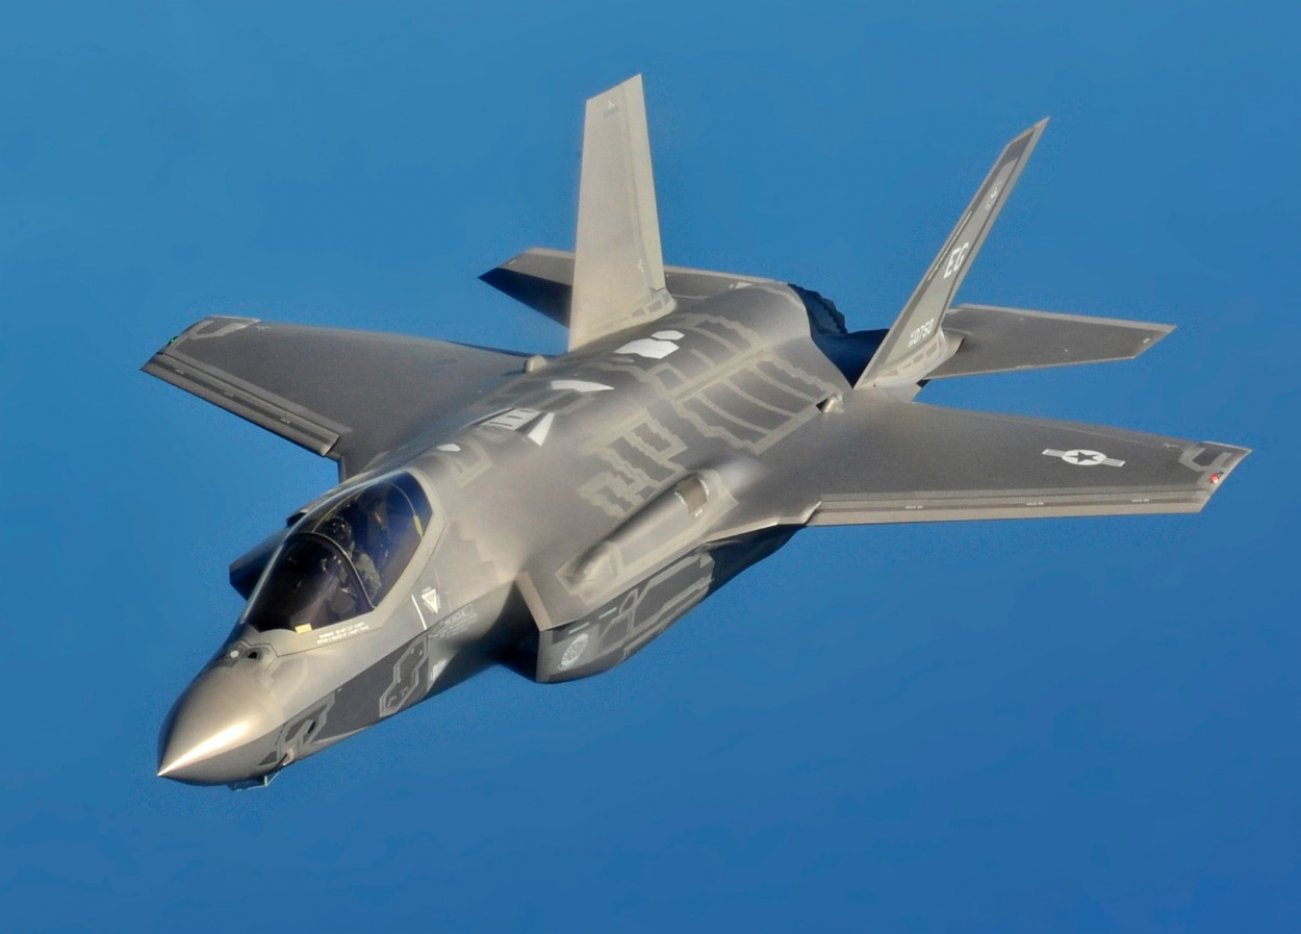 Think You Can Fly an F-35 Stealth Fighter? Watch This Video First.